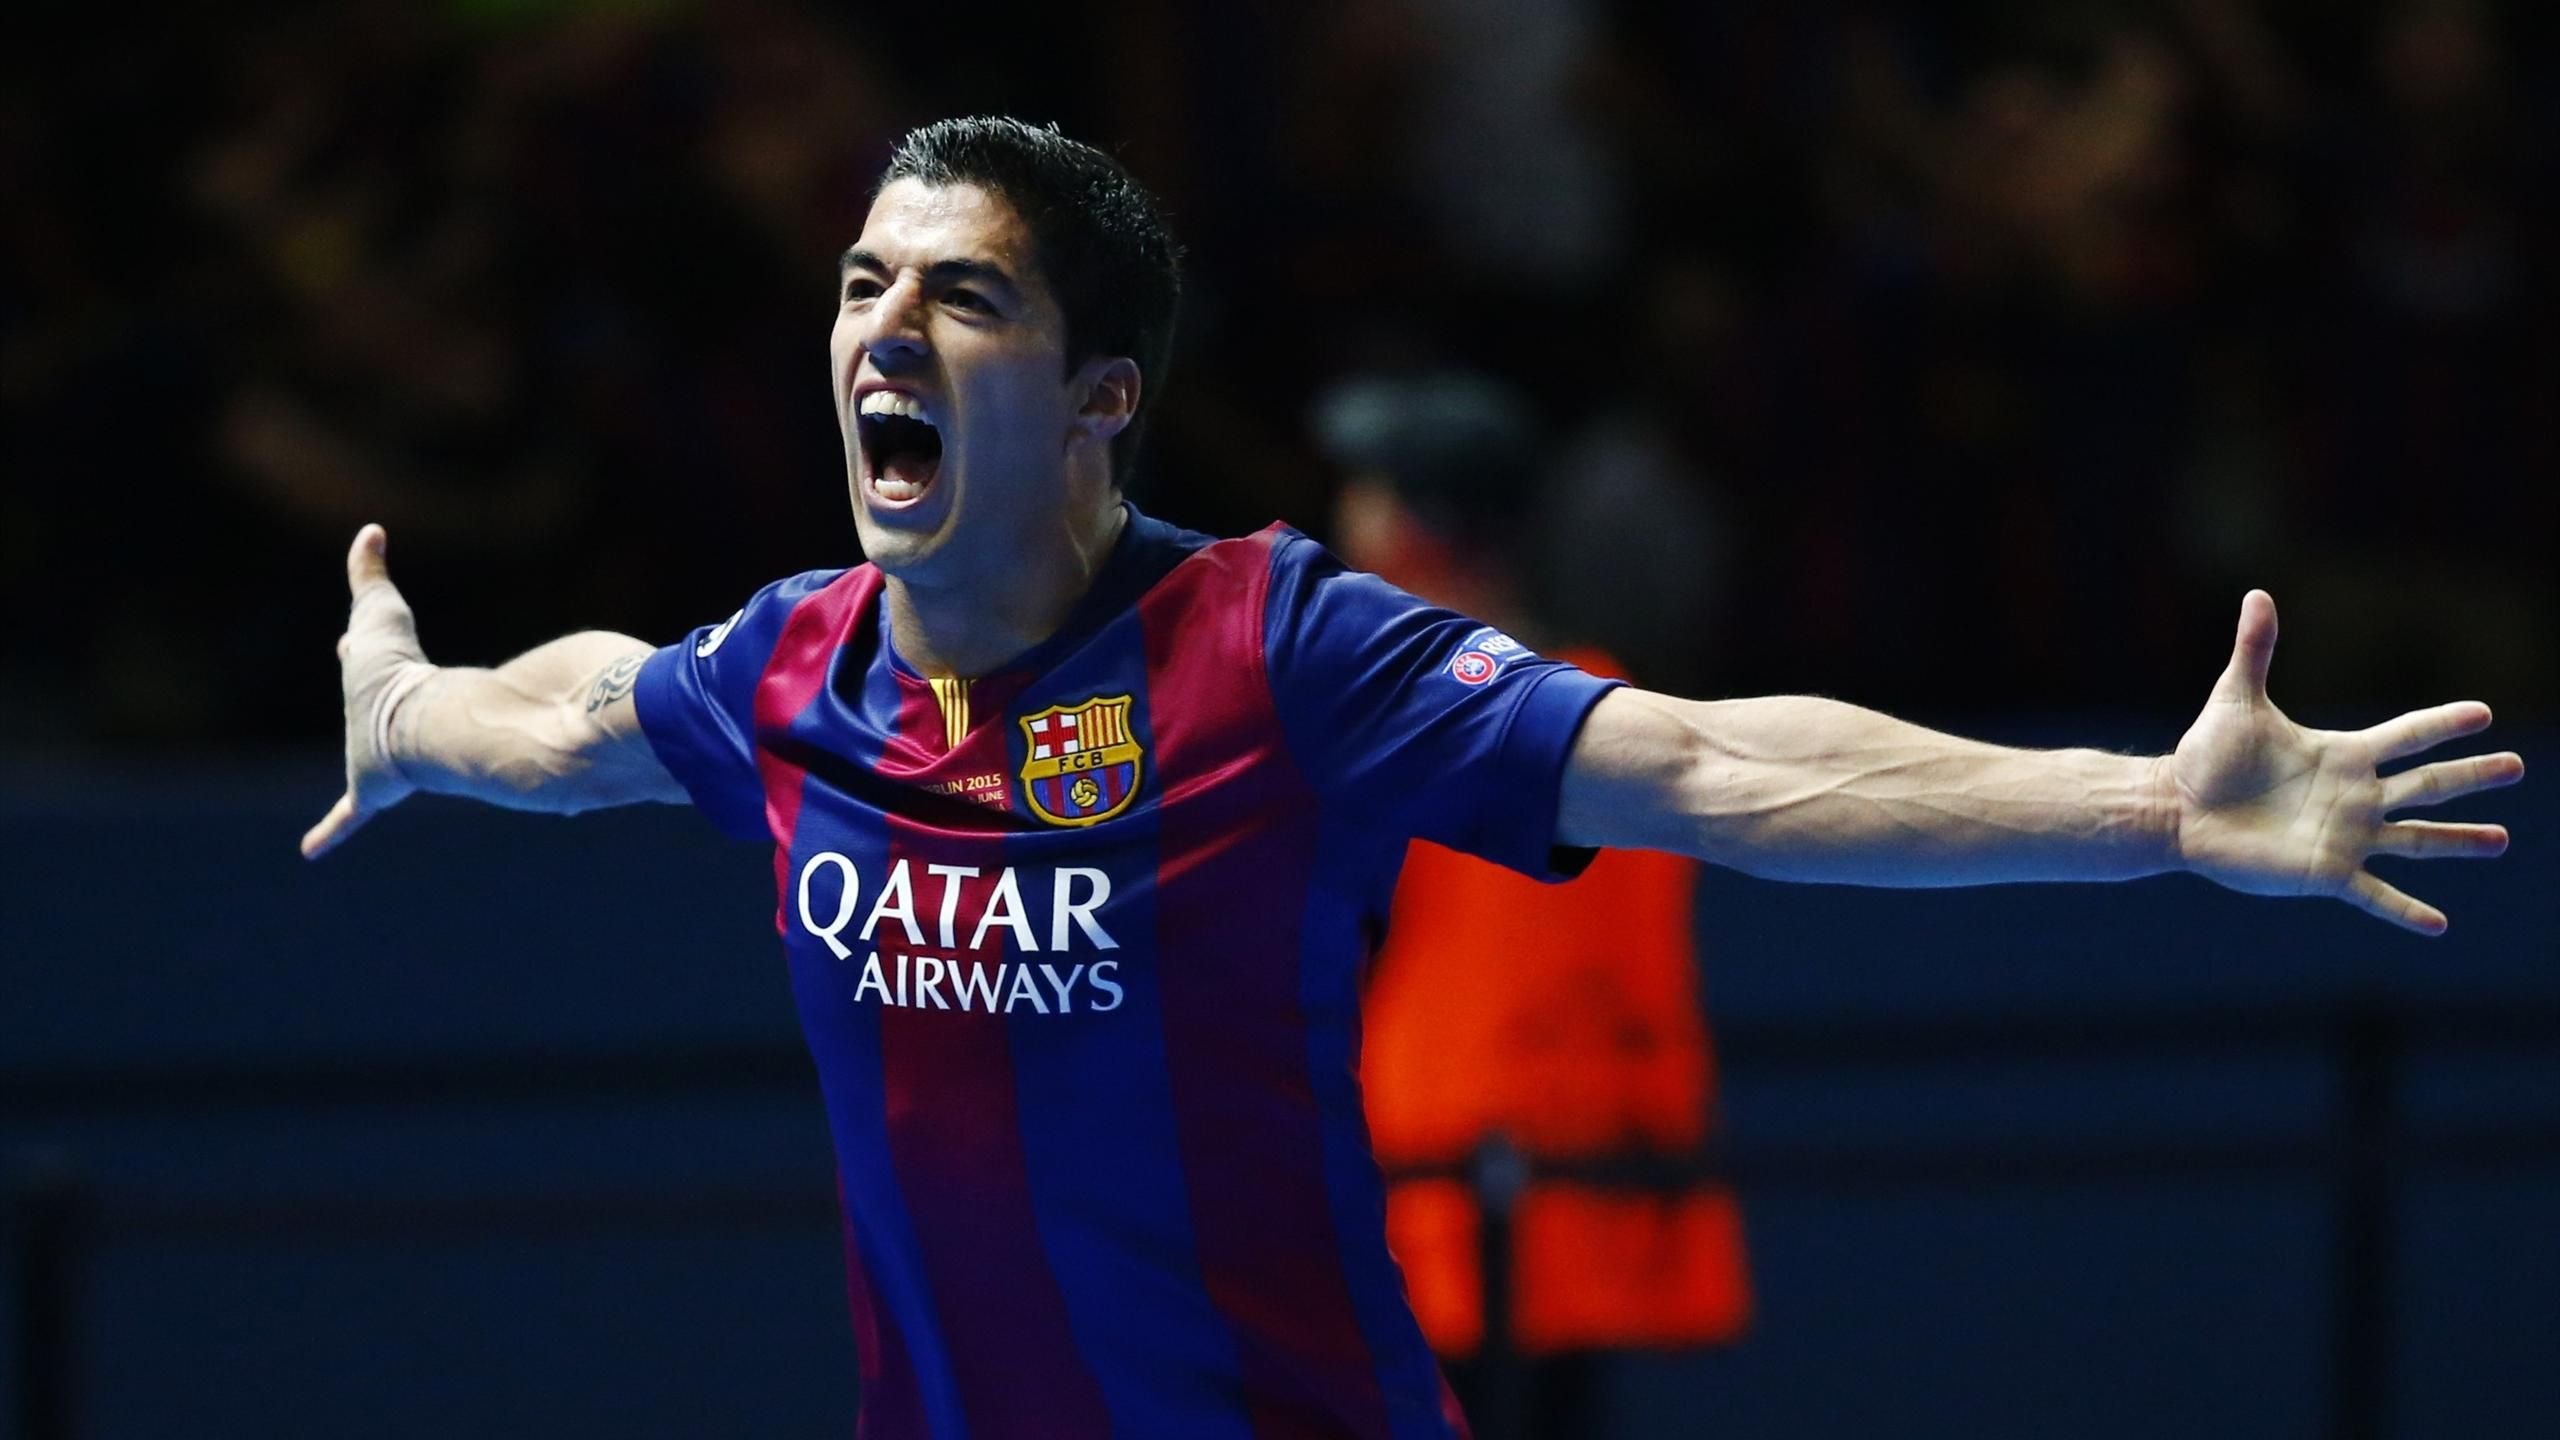 Luis Suarez Wallpapers Pictures Images 2560x1440